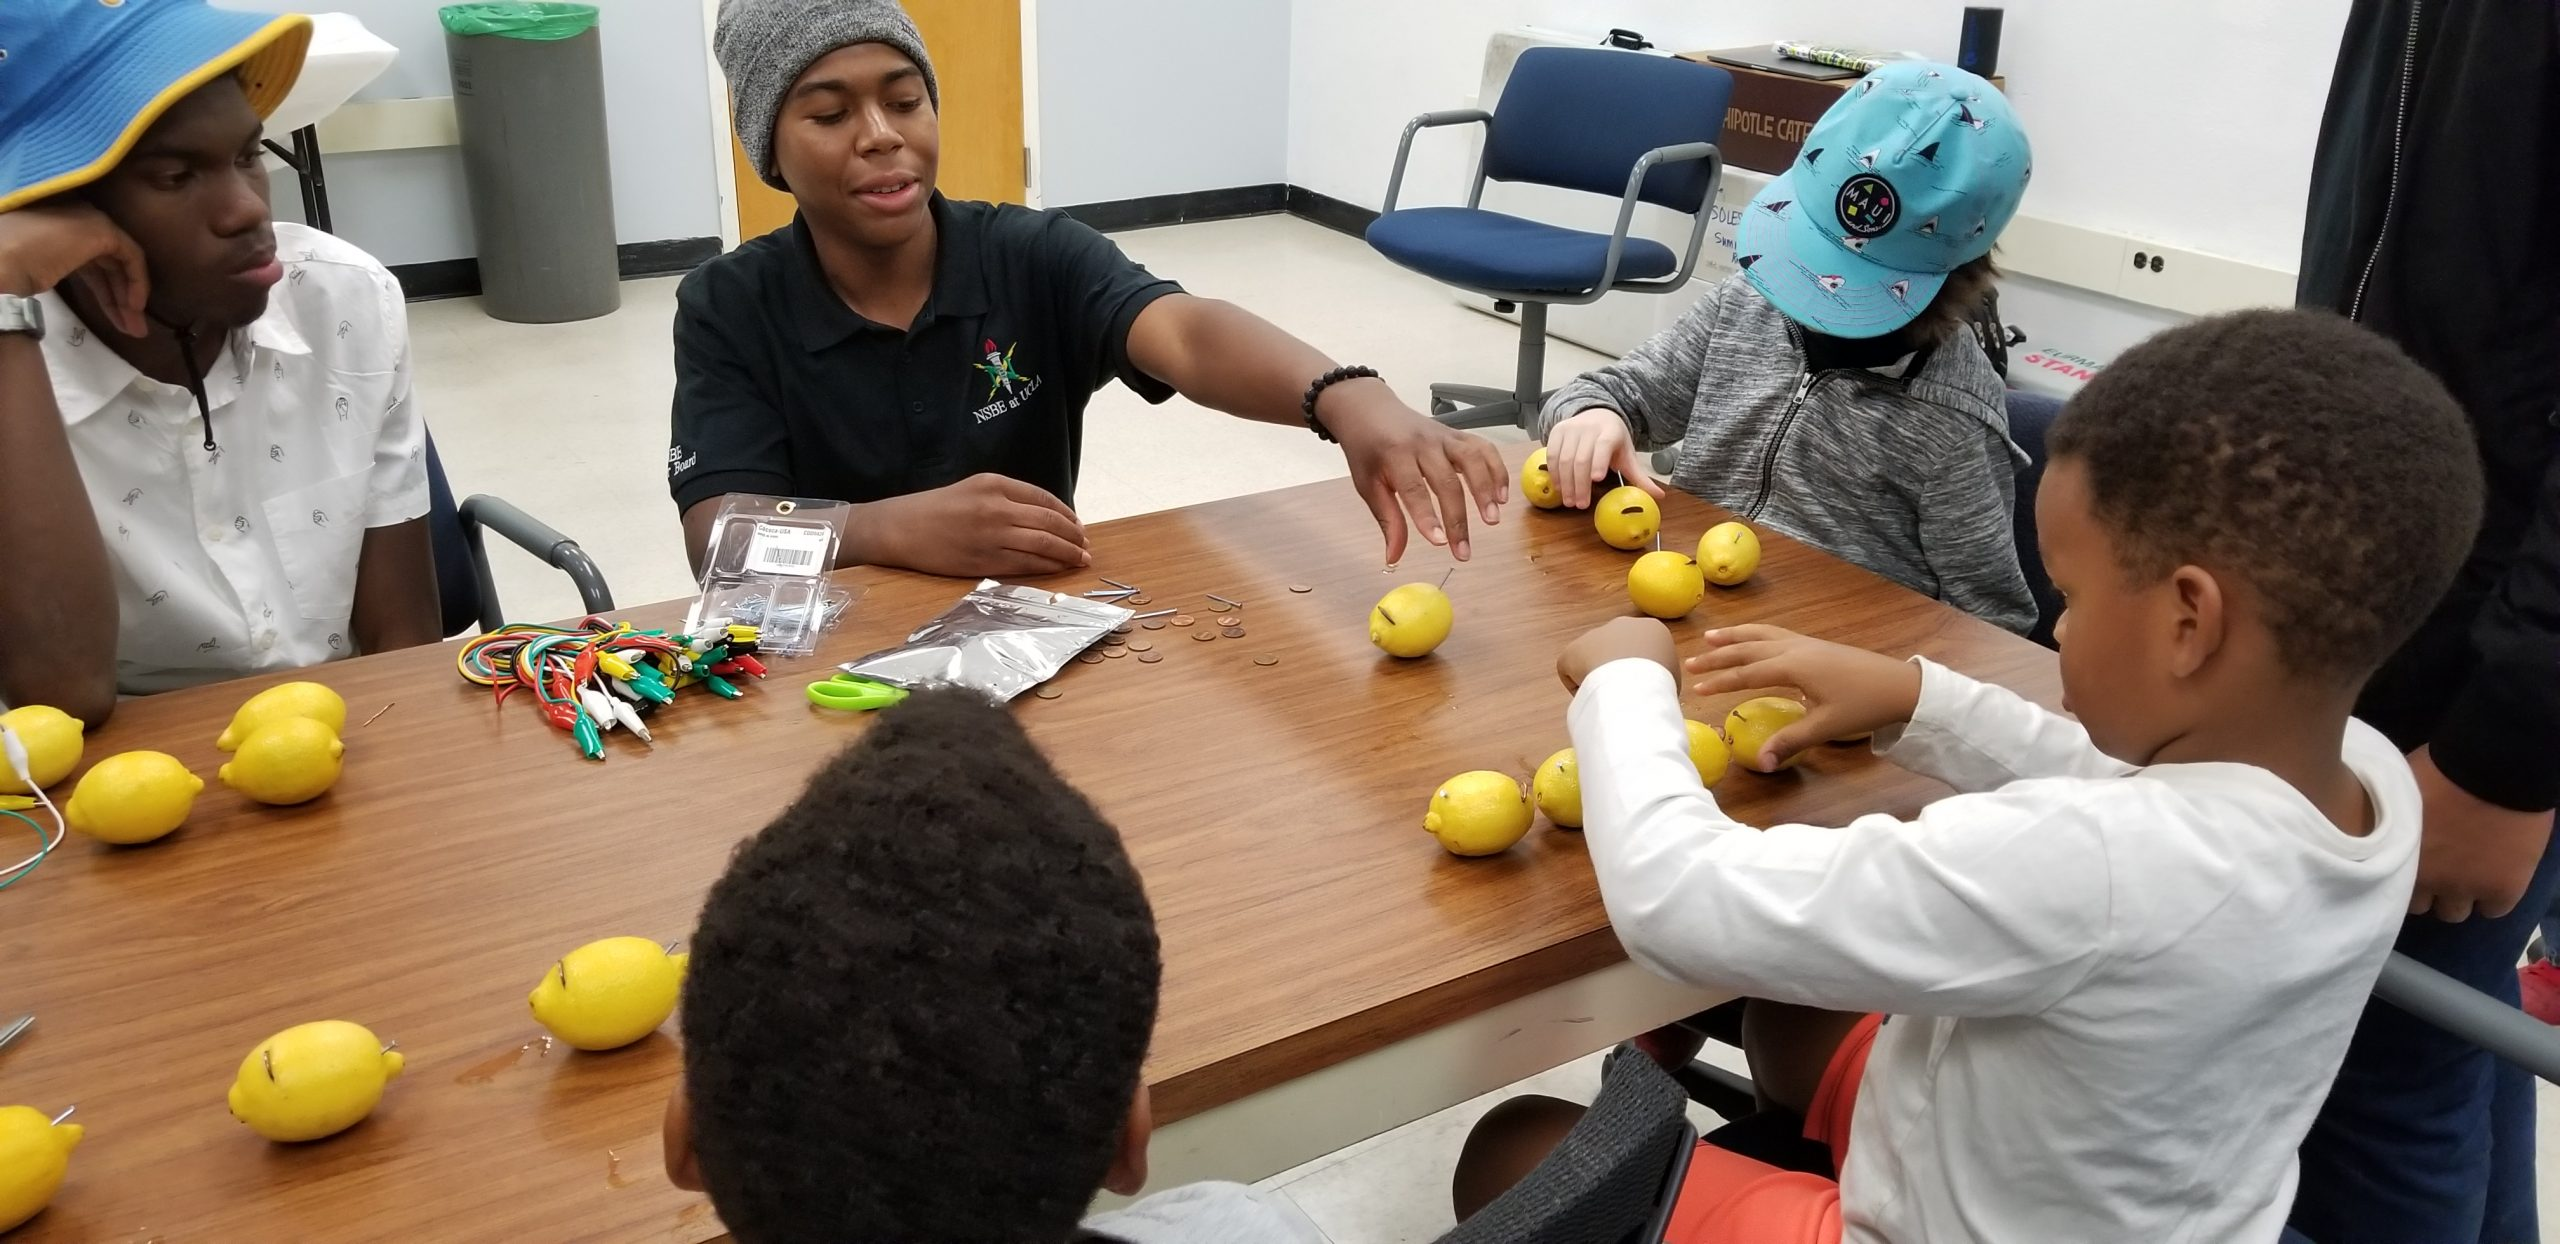 NSBE members Michael Buck and Emmanuel Boitey assist visiting homeschoolers in assembling batteries made of lemons.